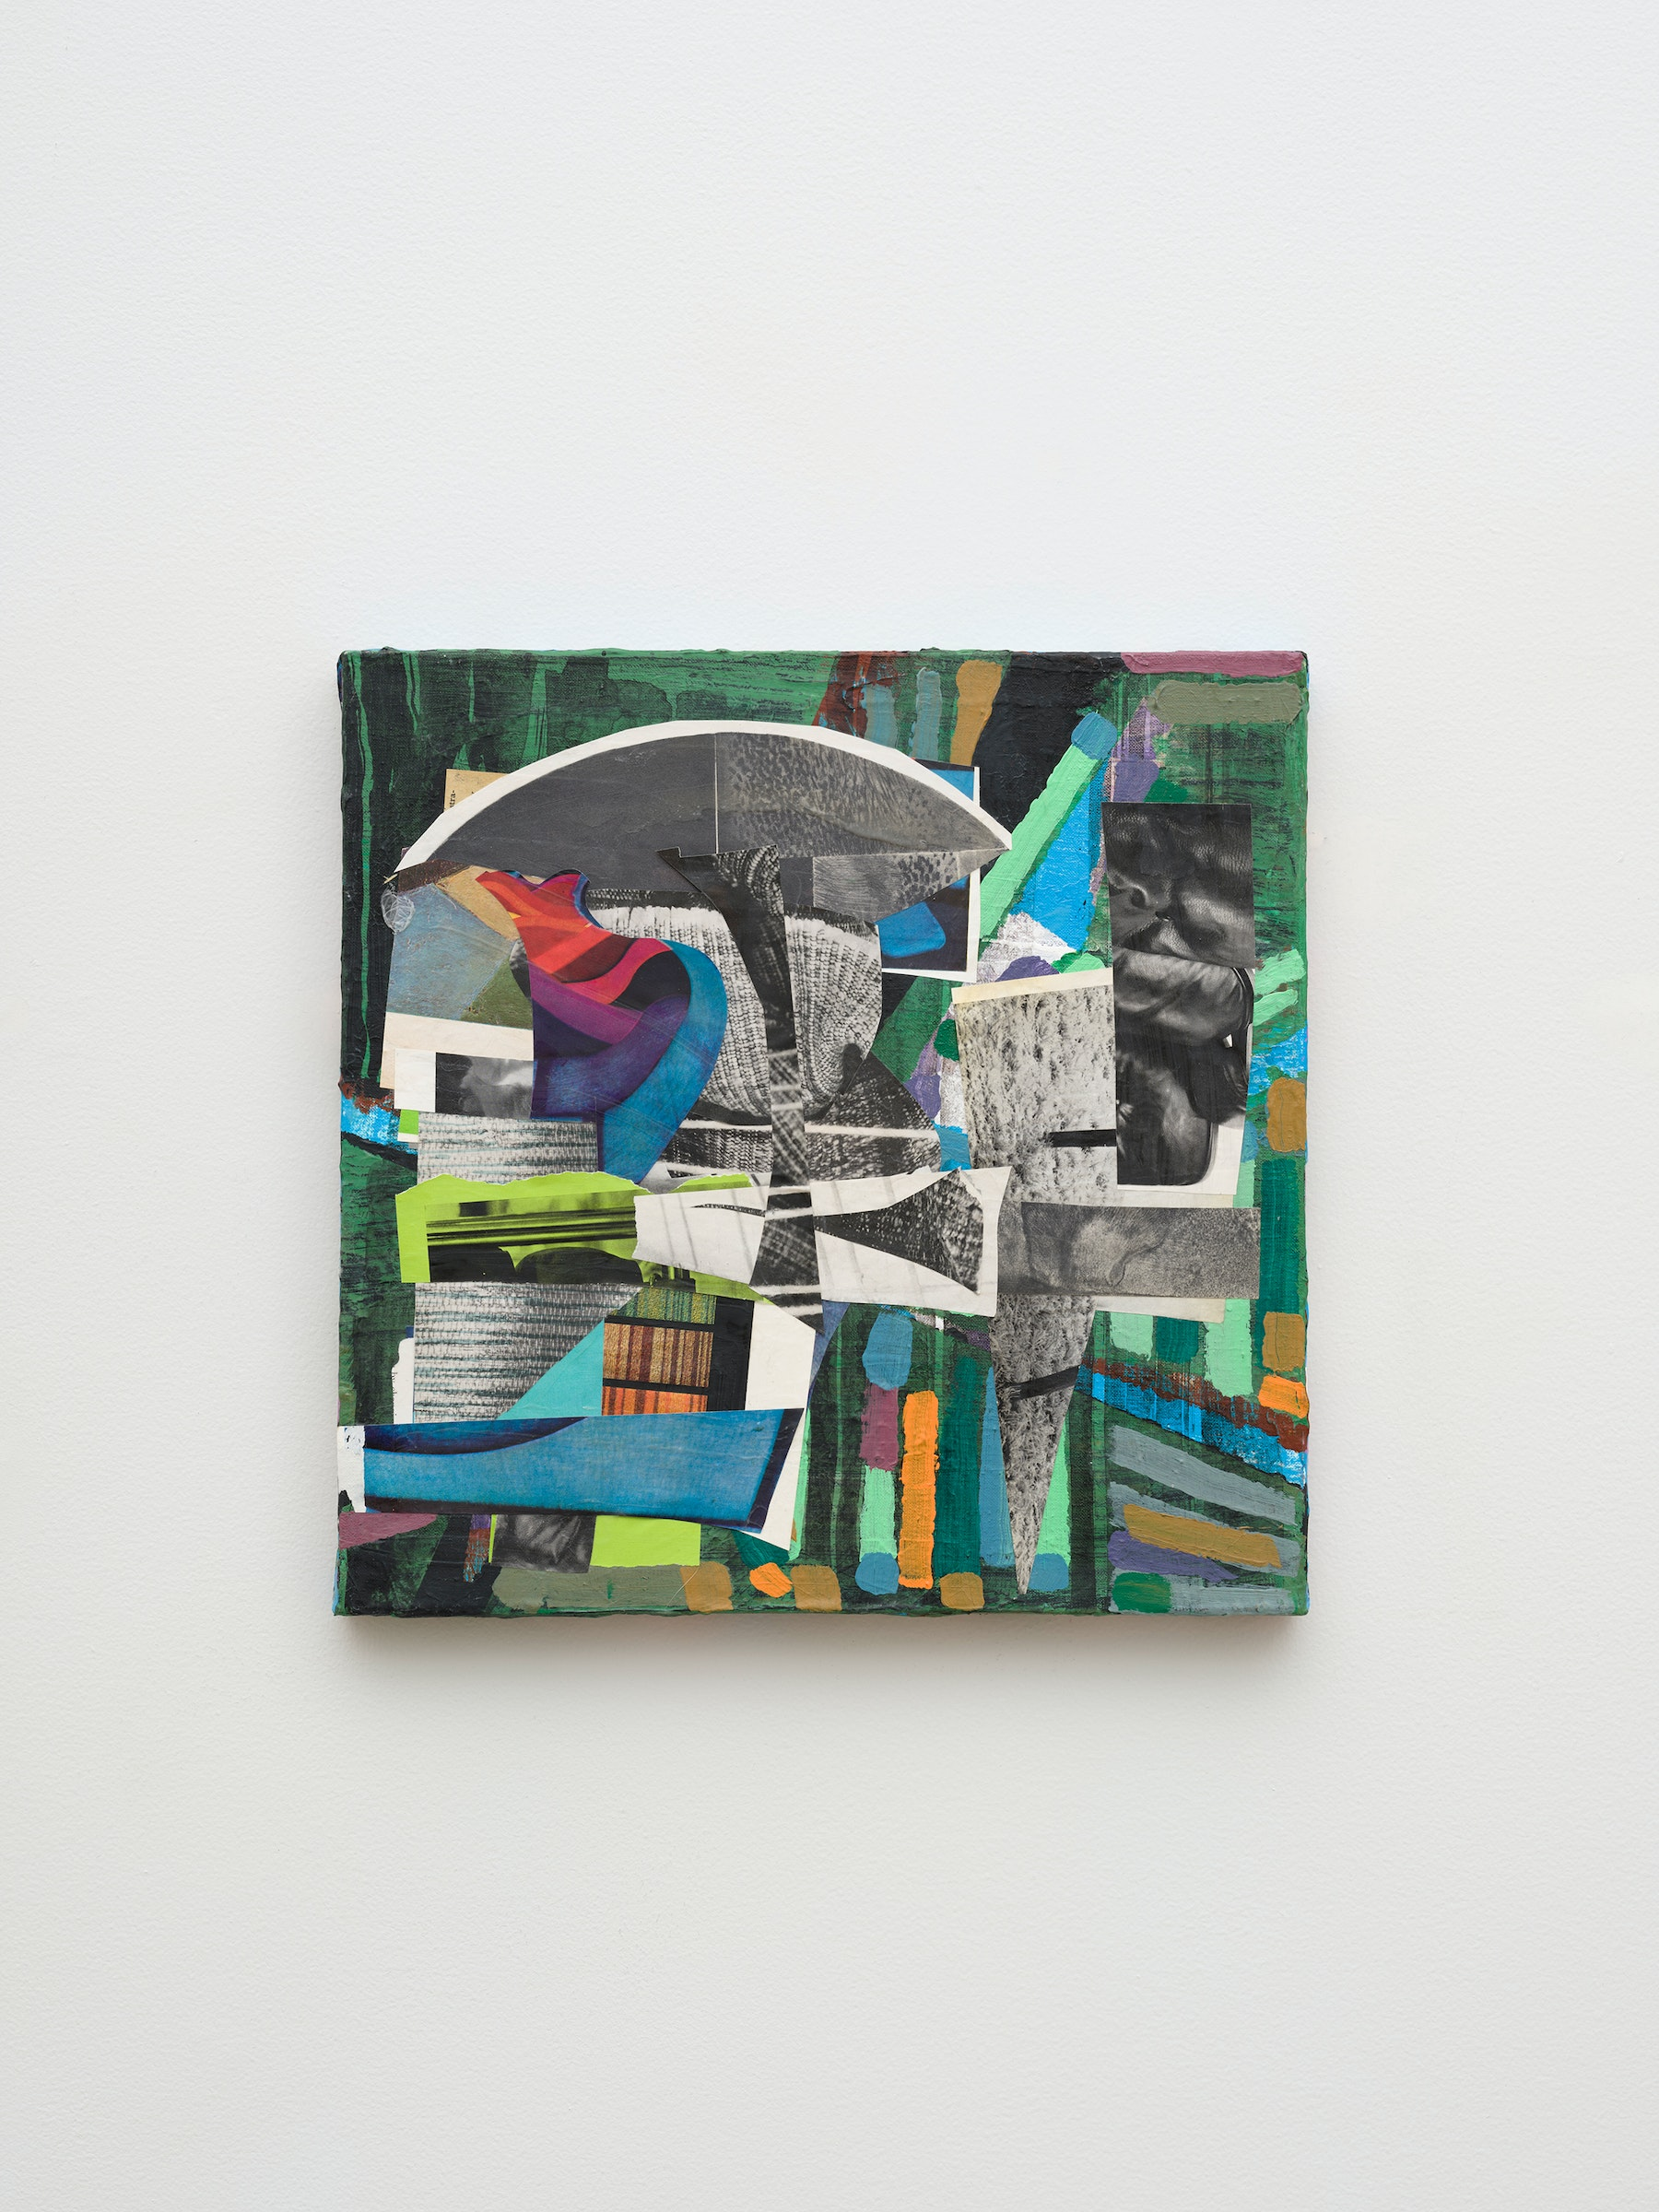 """Steve Roden """"super dog,"""" 2020 Mixed media on canvas 13"""" x 13"""" x 1"""" [HxWxD] (33.02 x 33.02 x 2.54 cm) Inventory #ROD701 Courtesy of the artist and Vielmetter Los Angeles Photo credit: Jeff McLane Signed and dated on the back"""